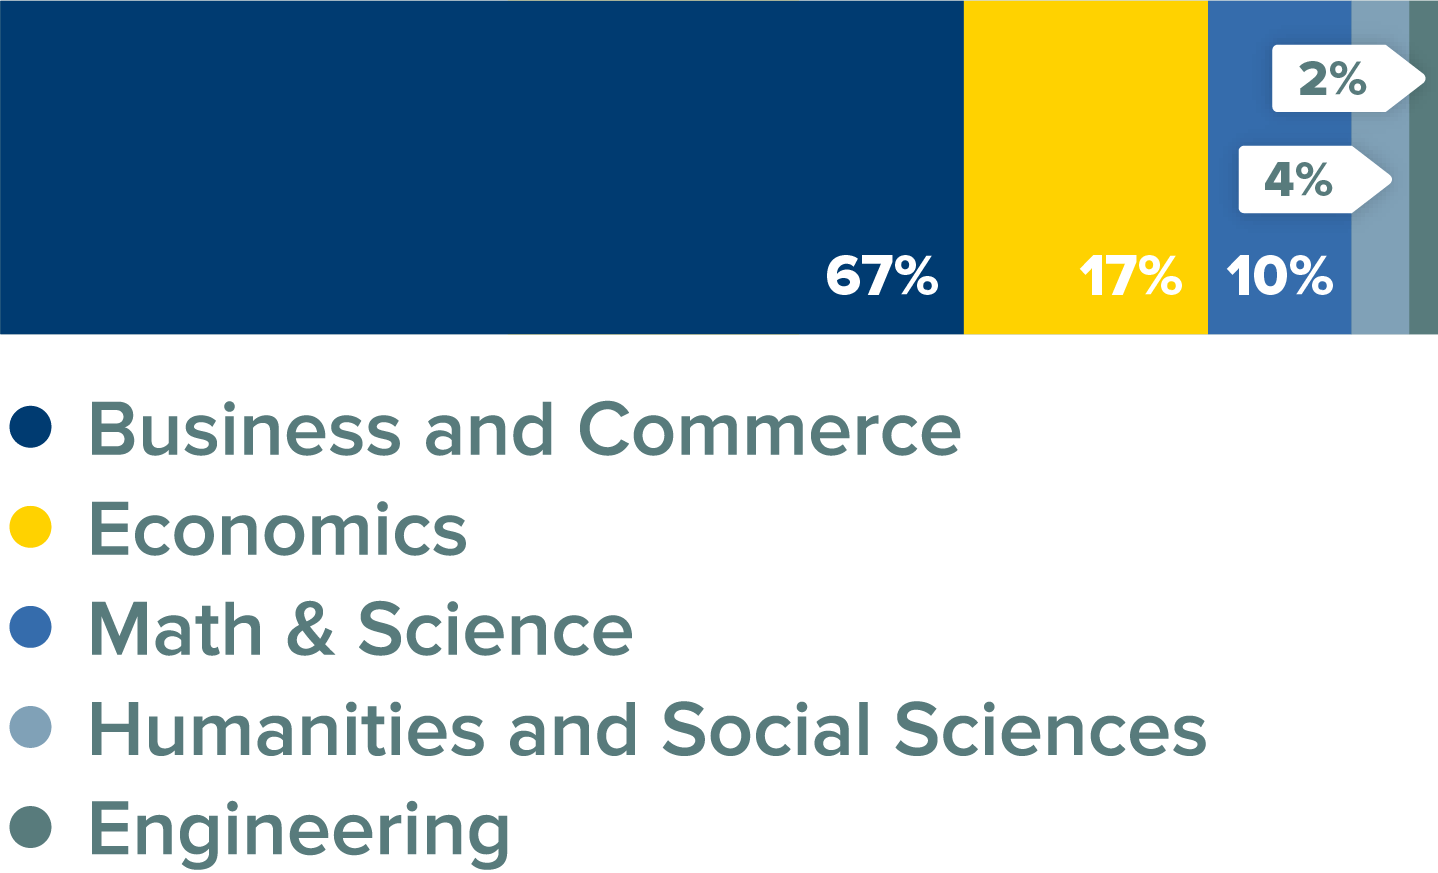 MSF Class Percentage by Major Bar Graph. 67% business and commerce; 17% economics; 10% math and science; 4% humanities and social sciences; 2% engineering.